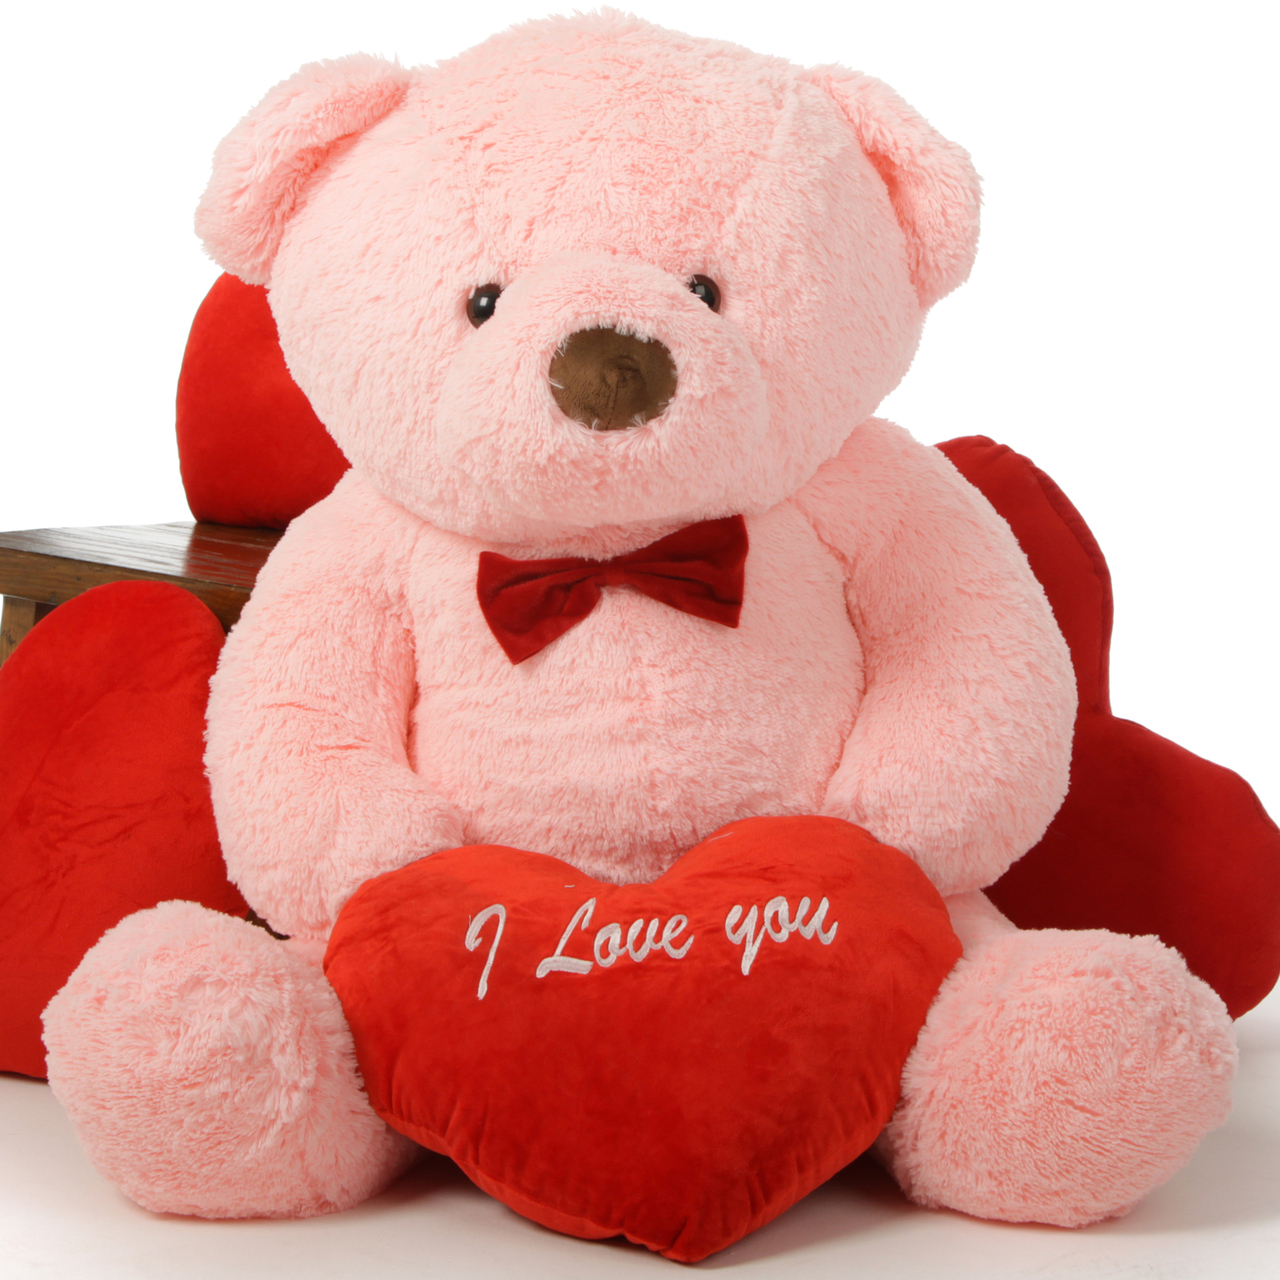 1efe465c16c21 50 Teddy Bear Pictures for Valentines Day 2019 - Hug2Love